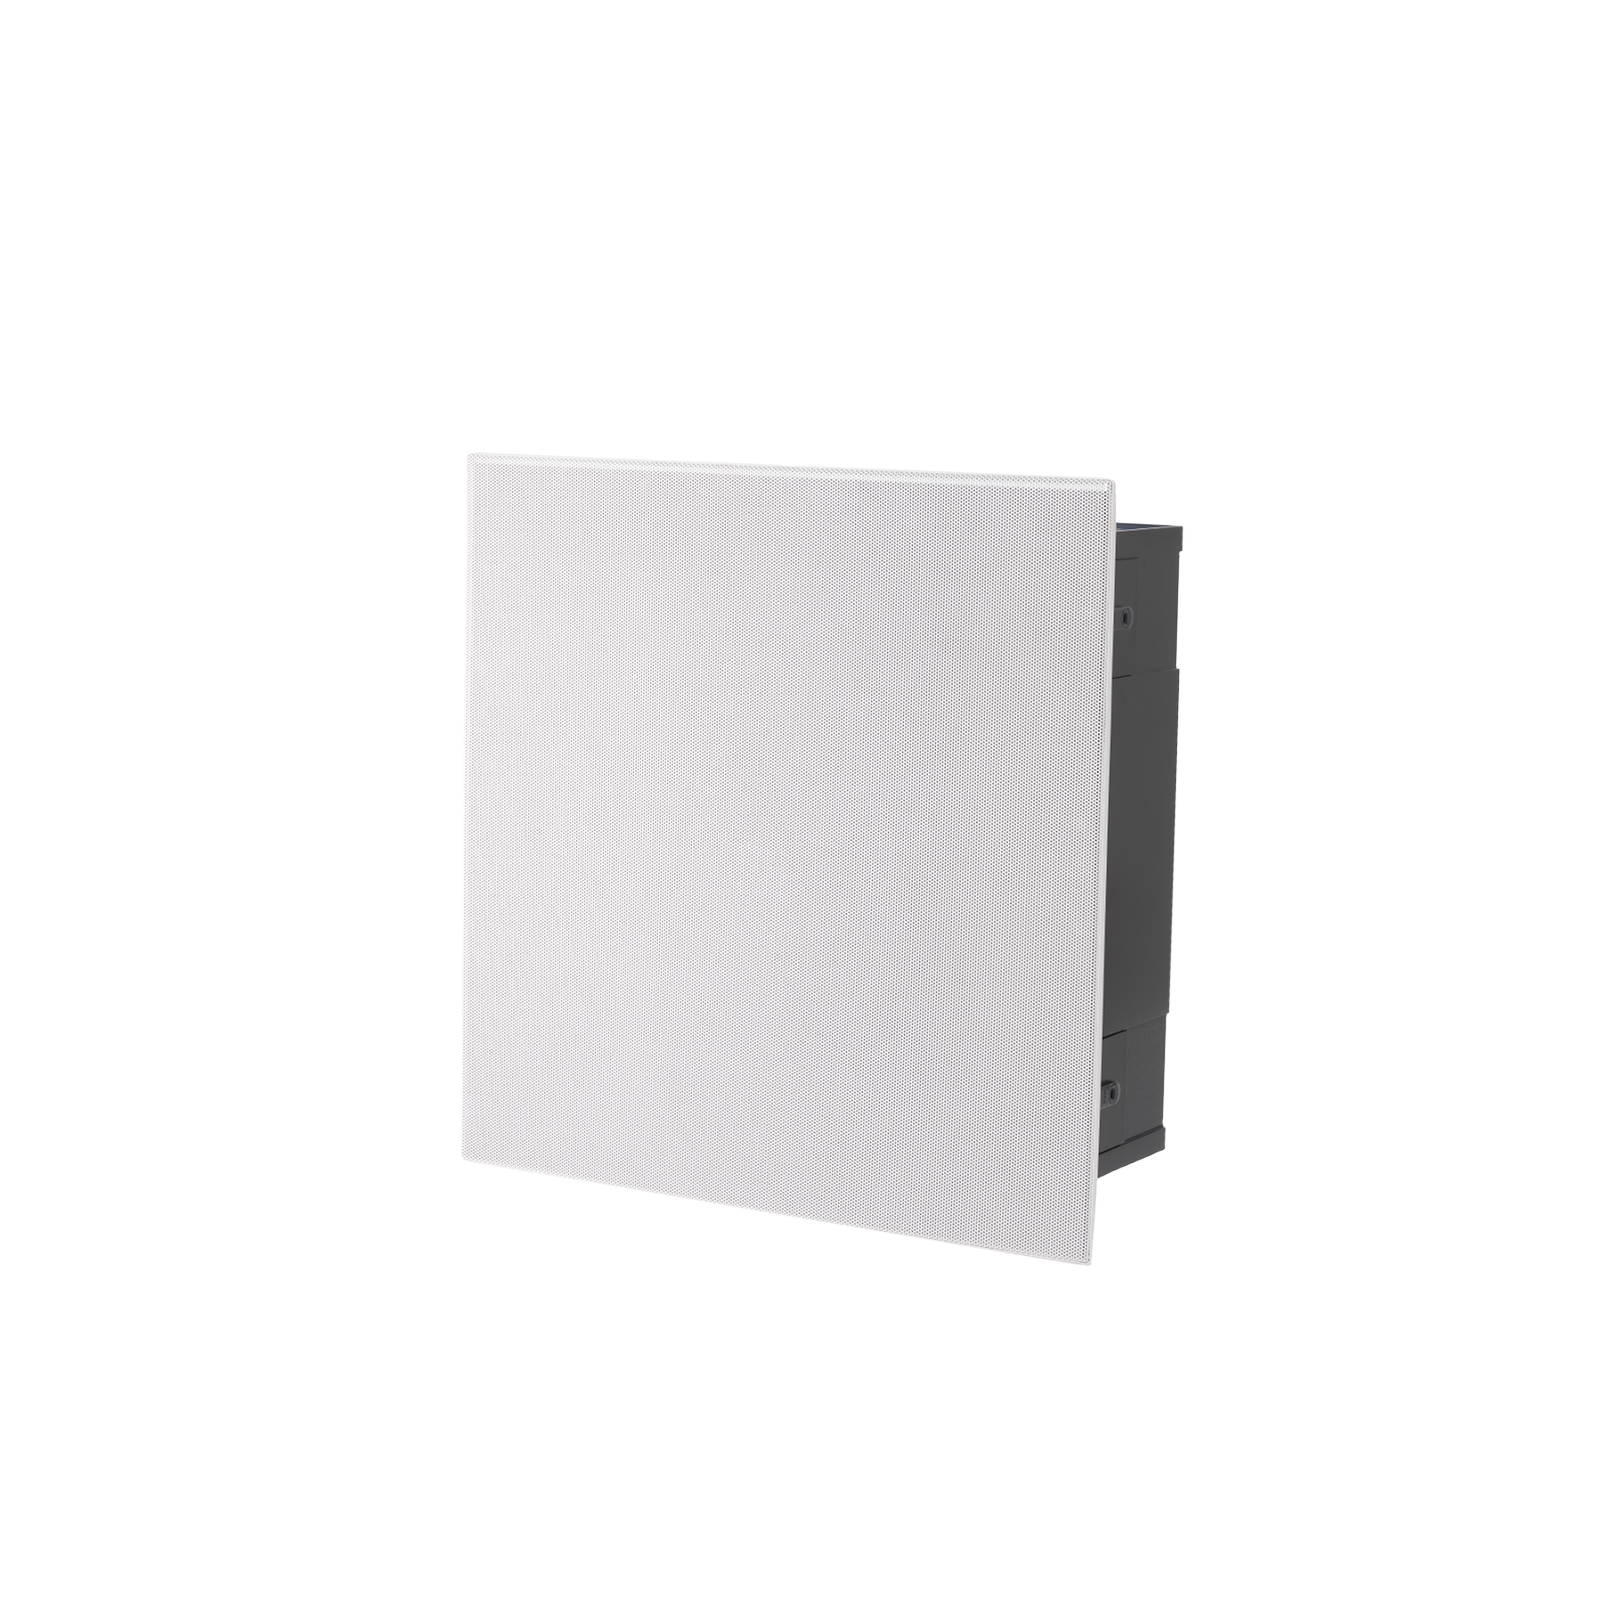 SCL-3 - Black Matte - Two-way In-Wall Loudspeaker - Detailshot 1